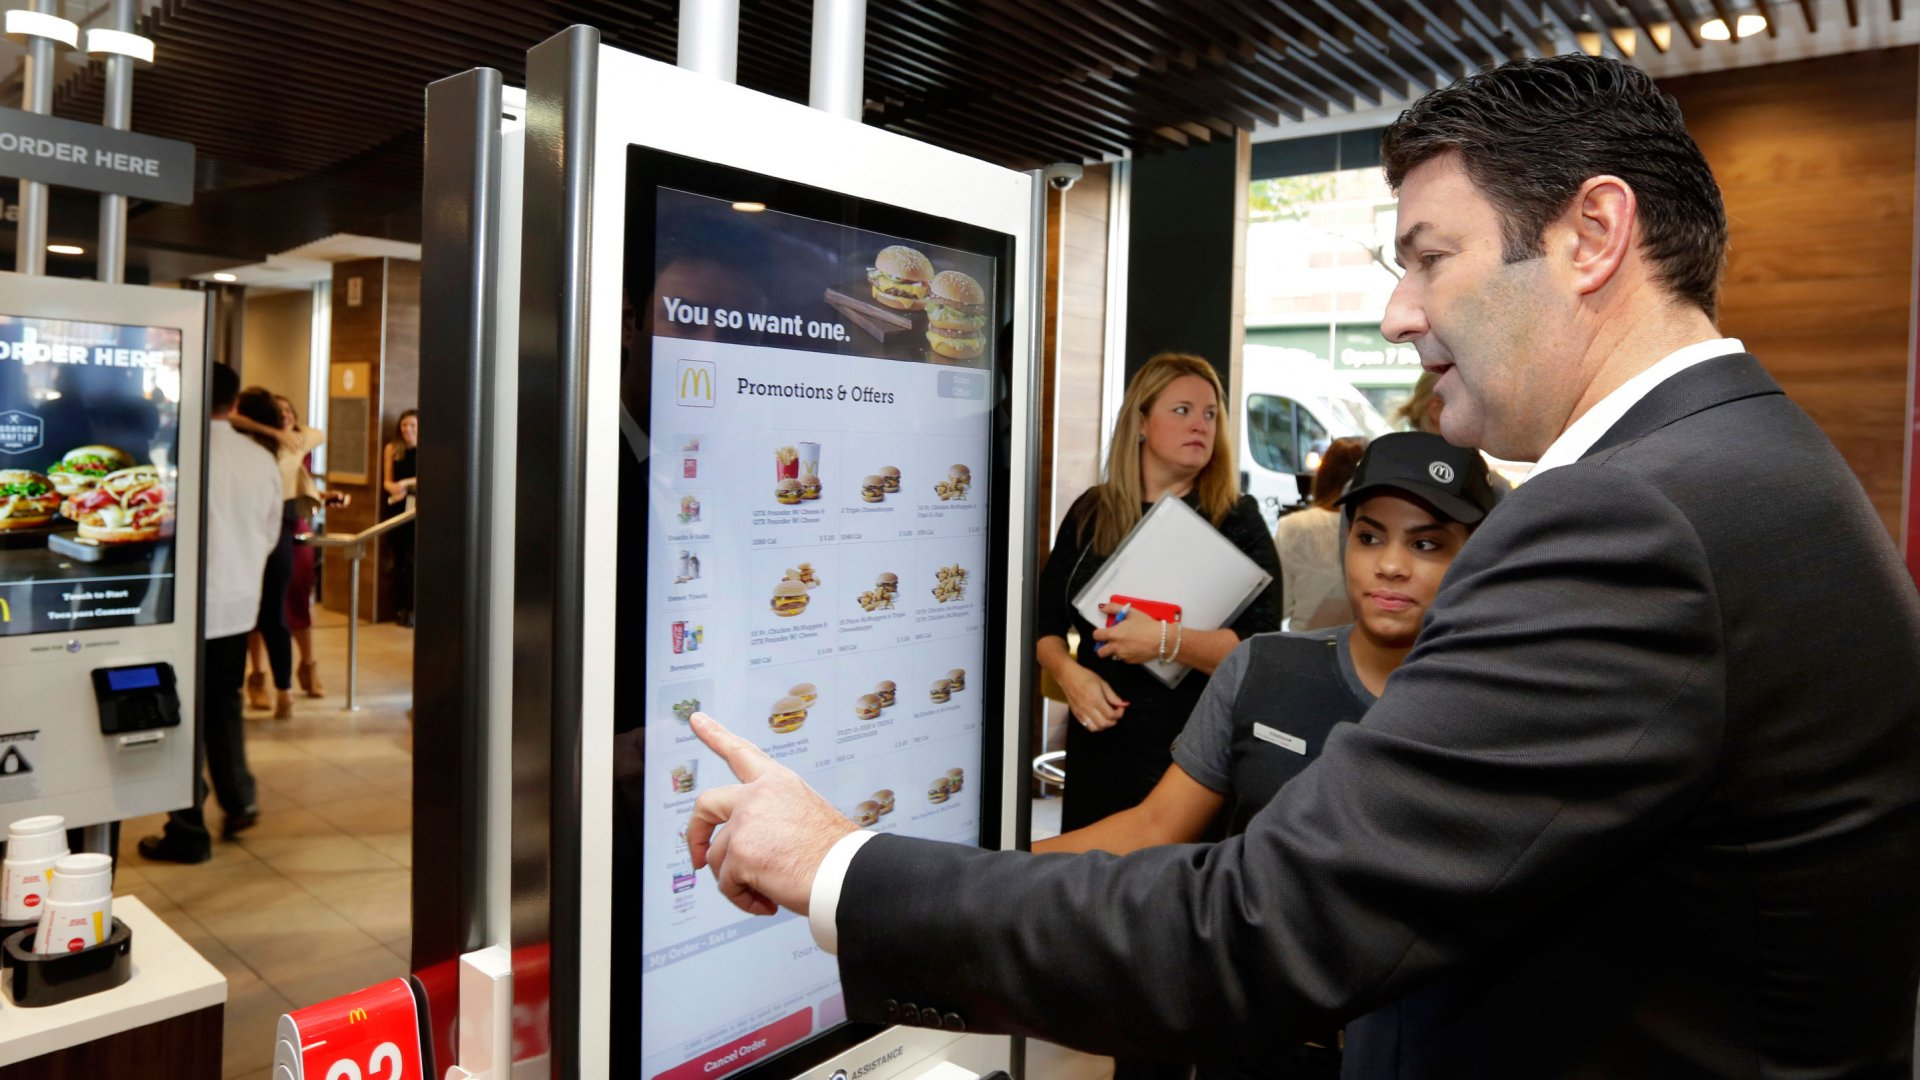 McDonald's CEO Steve Easterbrook demonstrates an order kiosk, with cashier Esmirna DeLeon, during a presentation at a McDonald's restaurant in New York's Tribeca neighborhood, Thursday, Nov. 17, 2016. On Thursday, the company said it wants to makes its fast-food outlets feel more like restaurants, with plans to eventually expand table service across its U.S. locations.